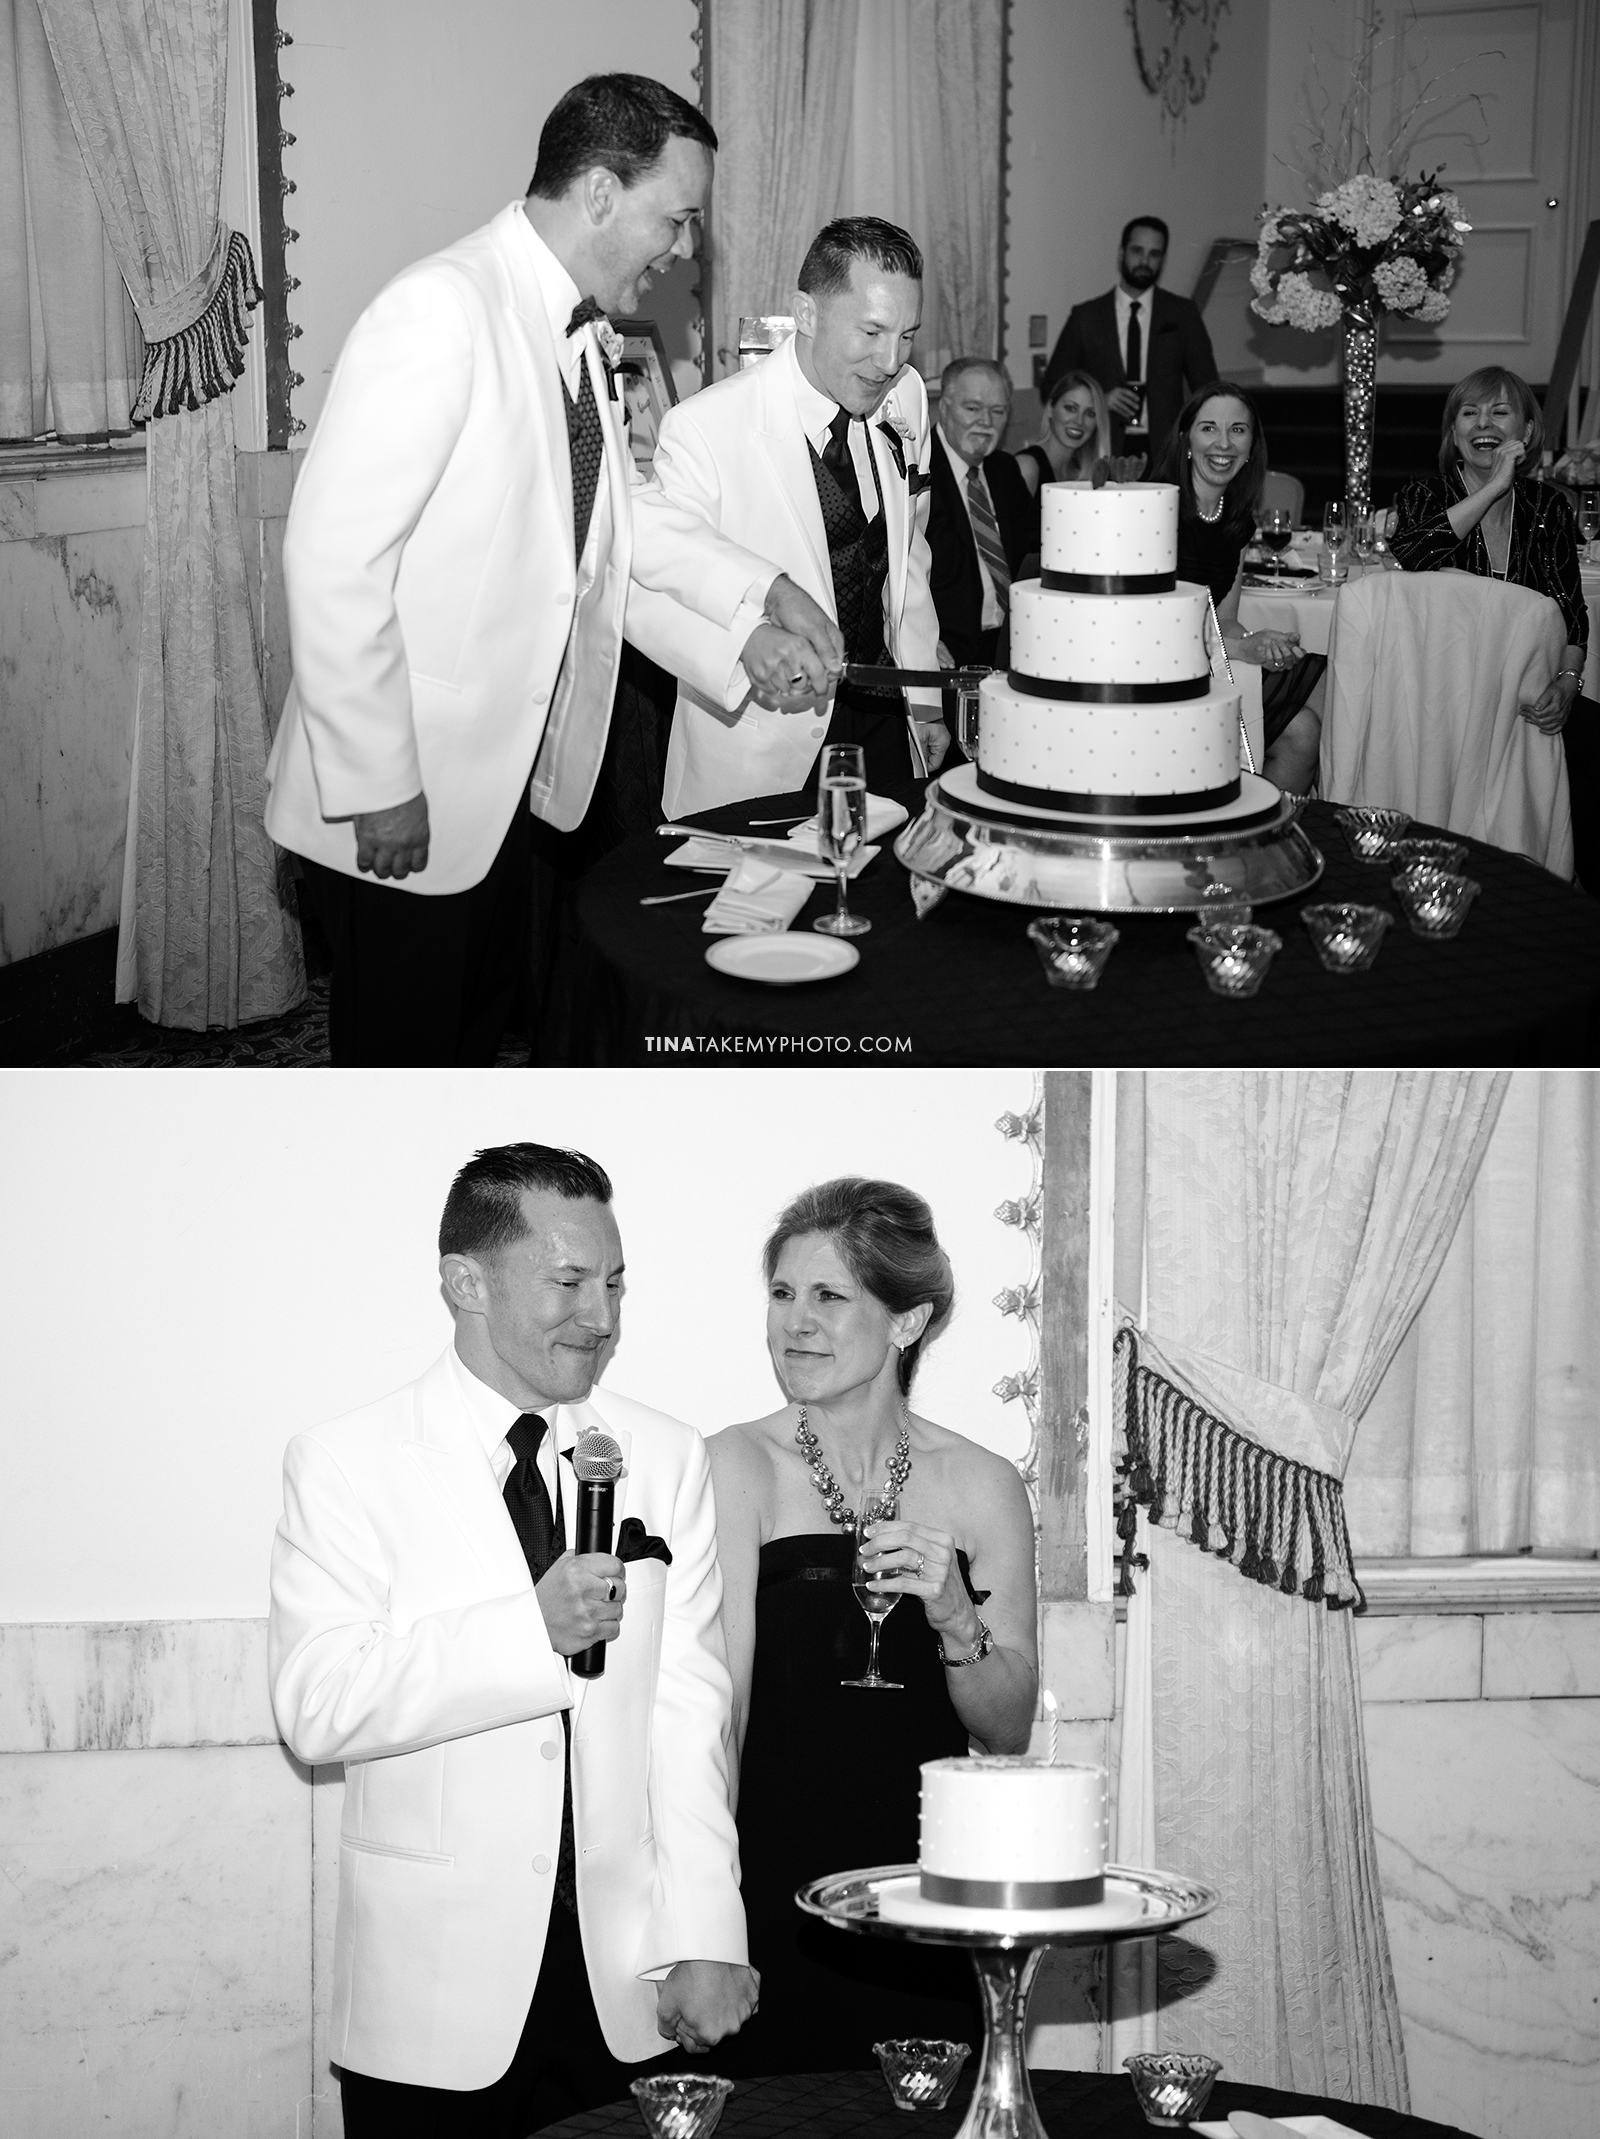 36-Washington-DC-Virginia-Gay-Same-Sex-Wedding-Men-12-13-14-Cake-Cutting-Mayflower-Hotel-Sister-Birthday-Surprise